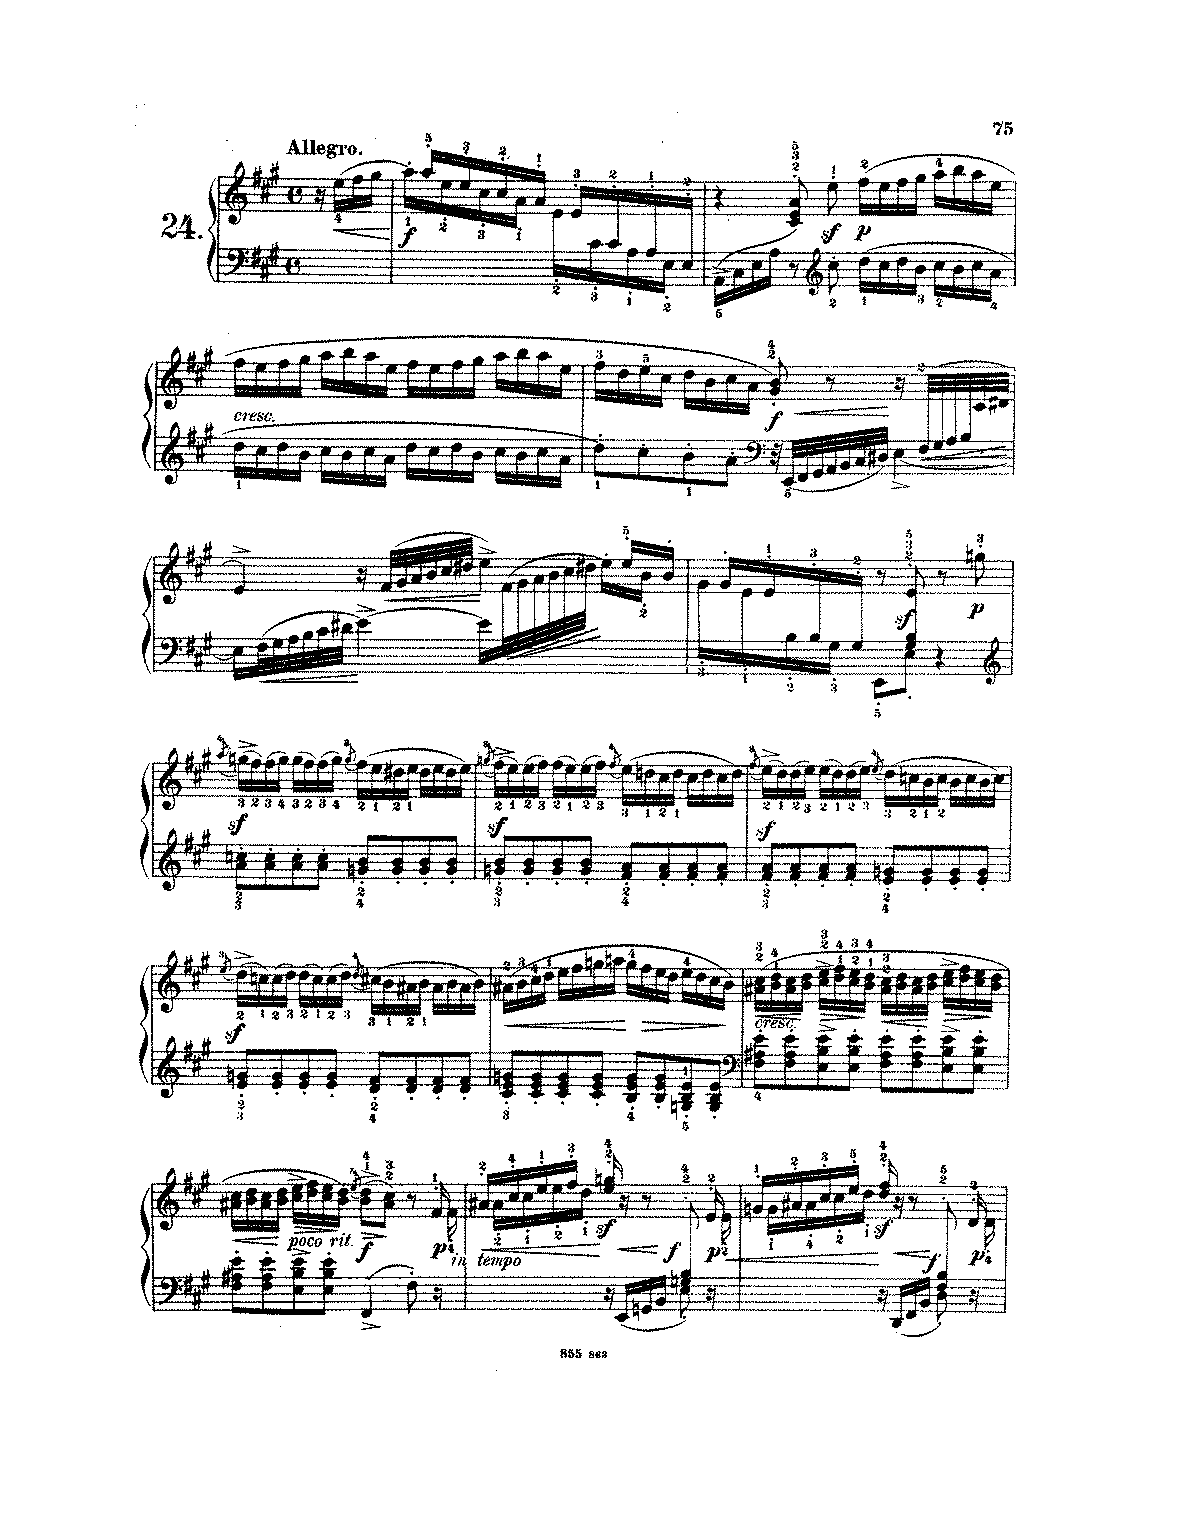 PMLP331987-Sibley1802.22722 - No. 24 - Sonata in A major, K. 24.pdf